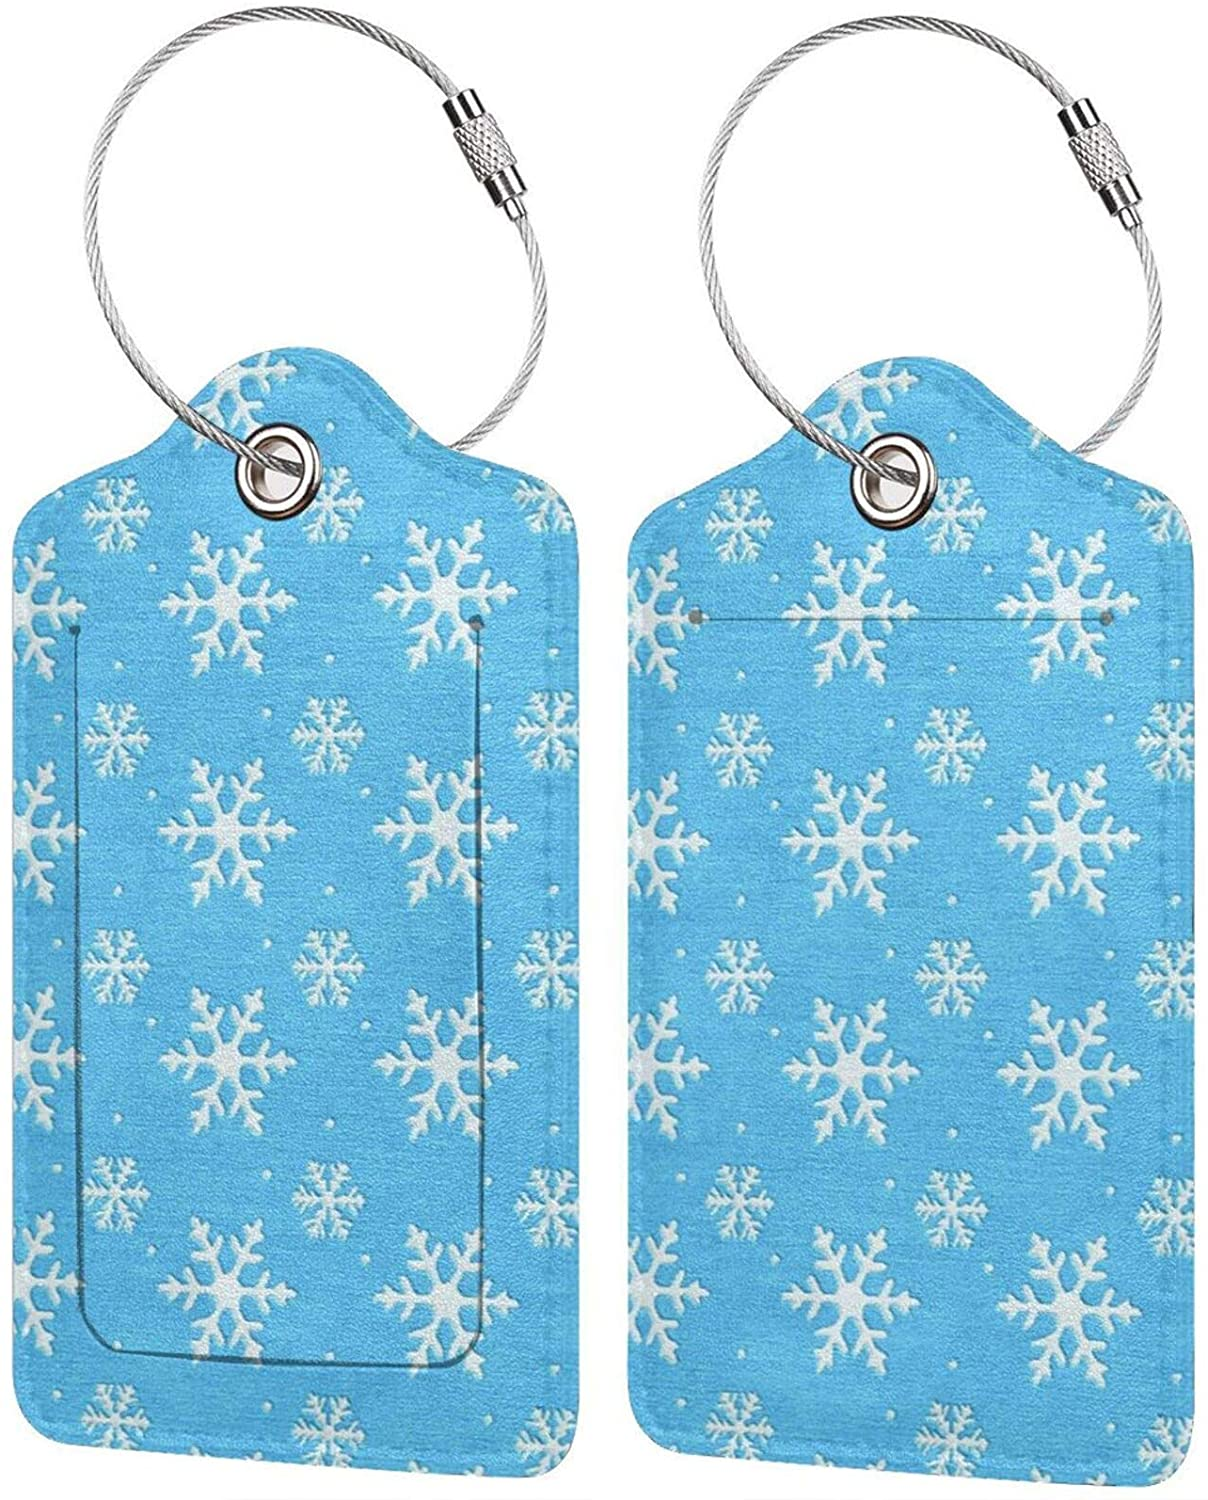 NiYoung Tourister Blue Frozen Snowflake Luggage Tag Fashion Suitcase Labels Cool Name Luggage Bag Tags with Stainless Steel Loop and Address Card